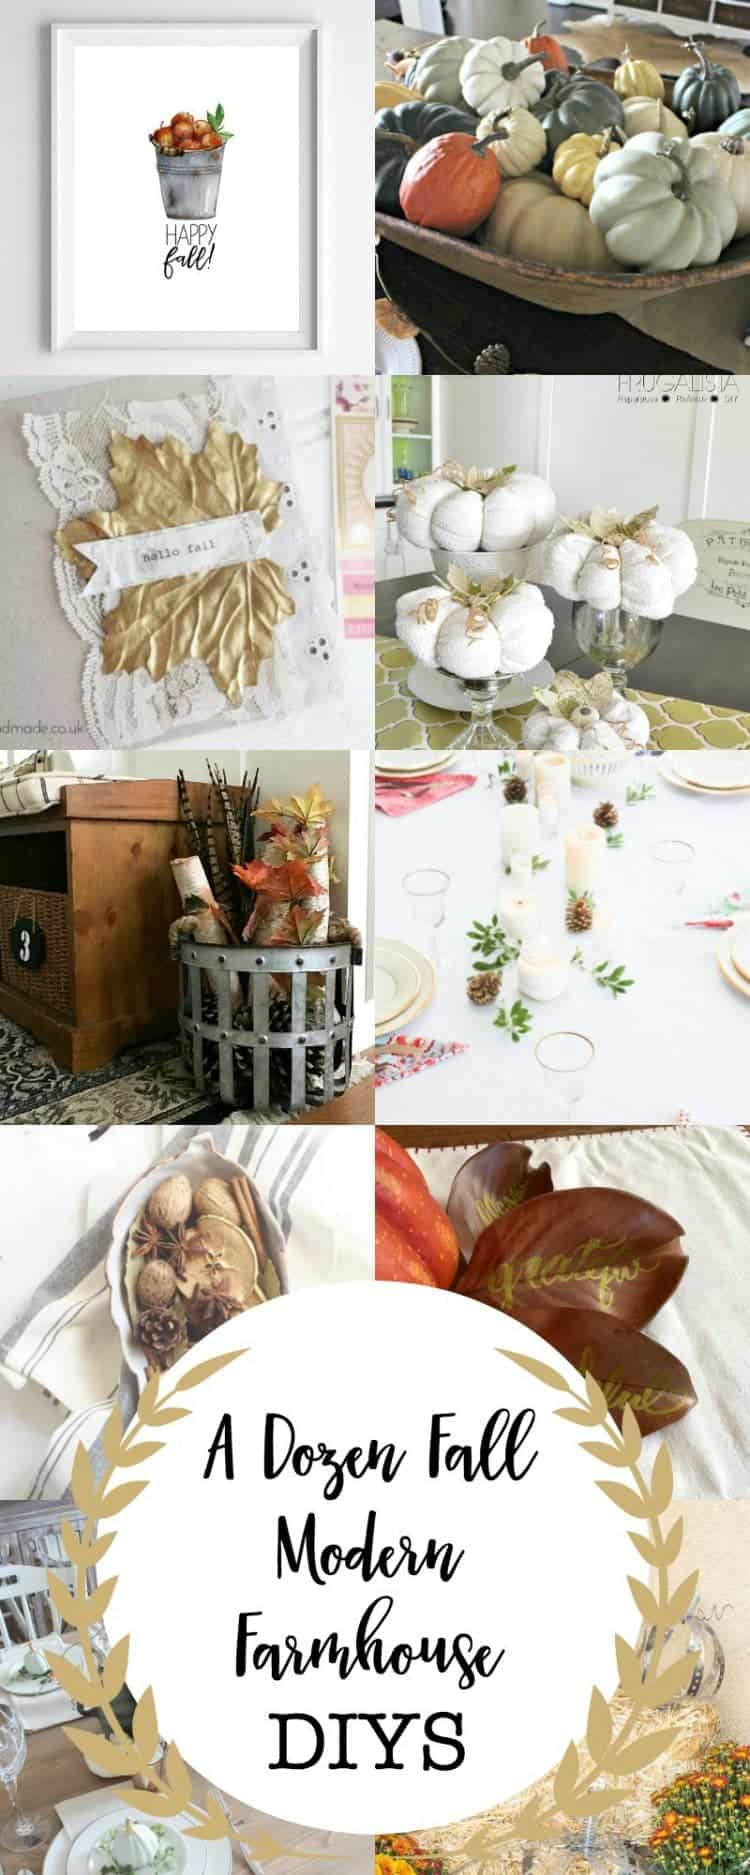 Fall Modern Farmhouse DIYS